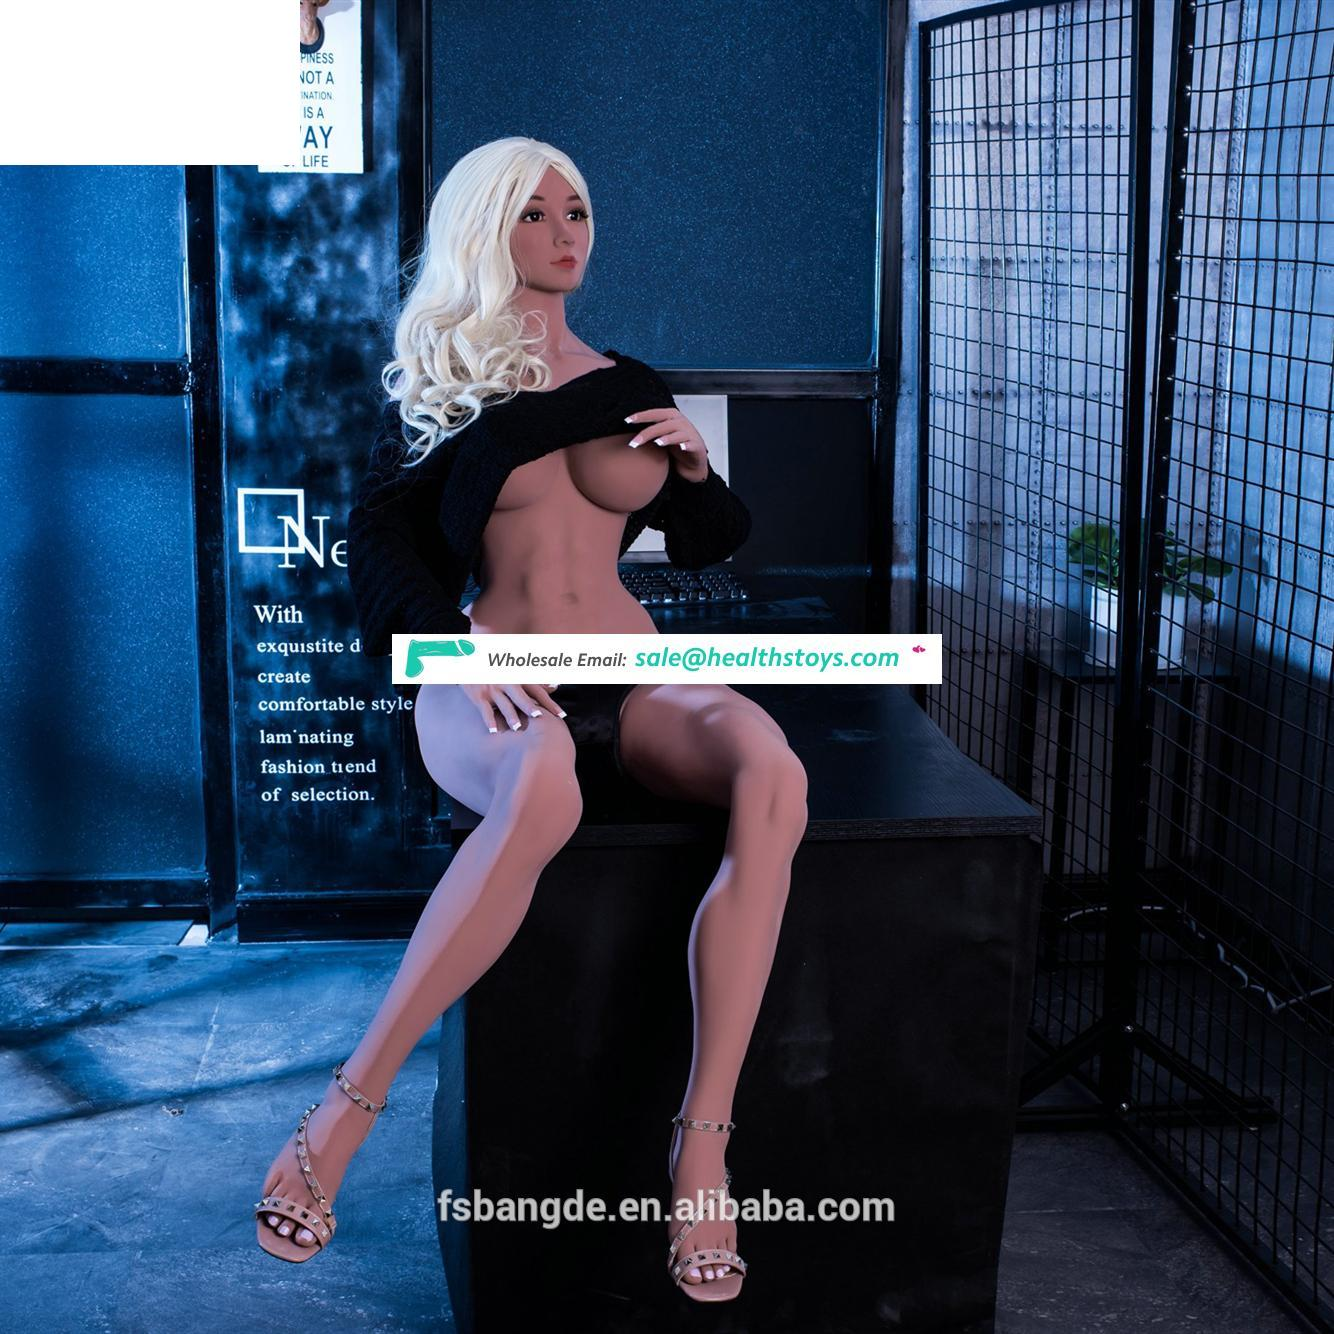 Personalized sex toy silicon dolls love doll 163cm power supply with great price